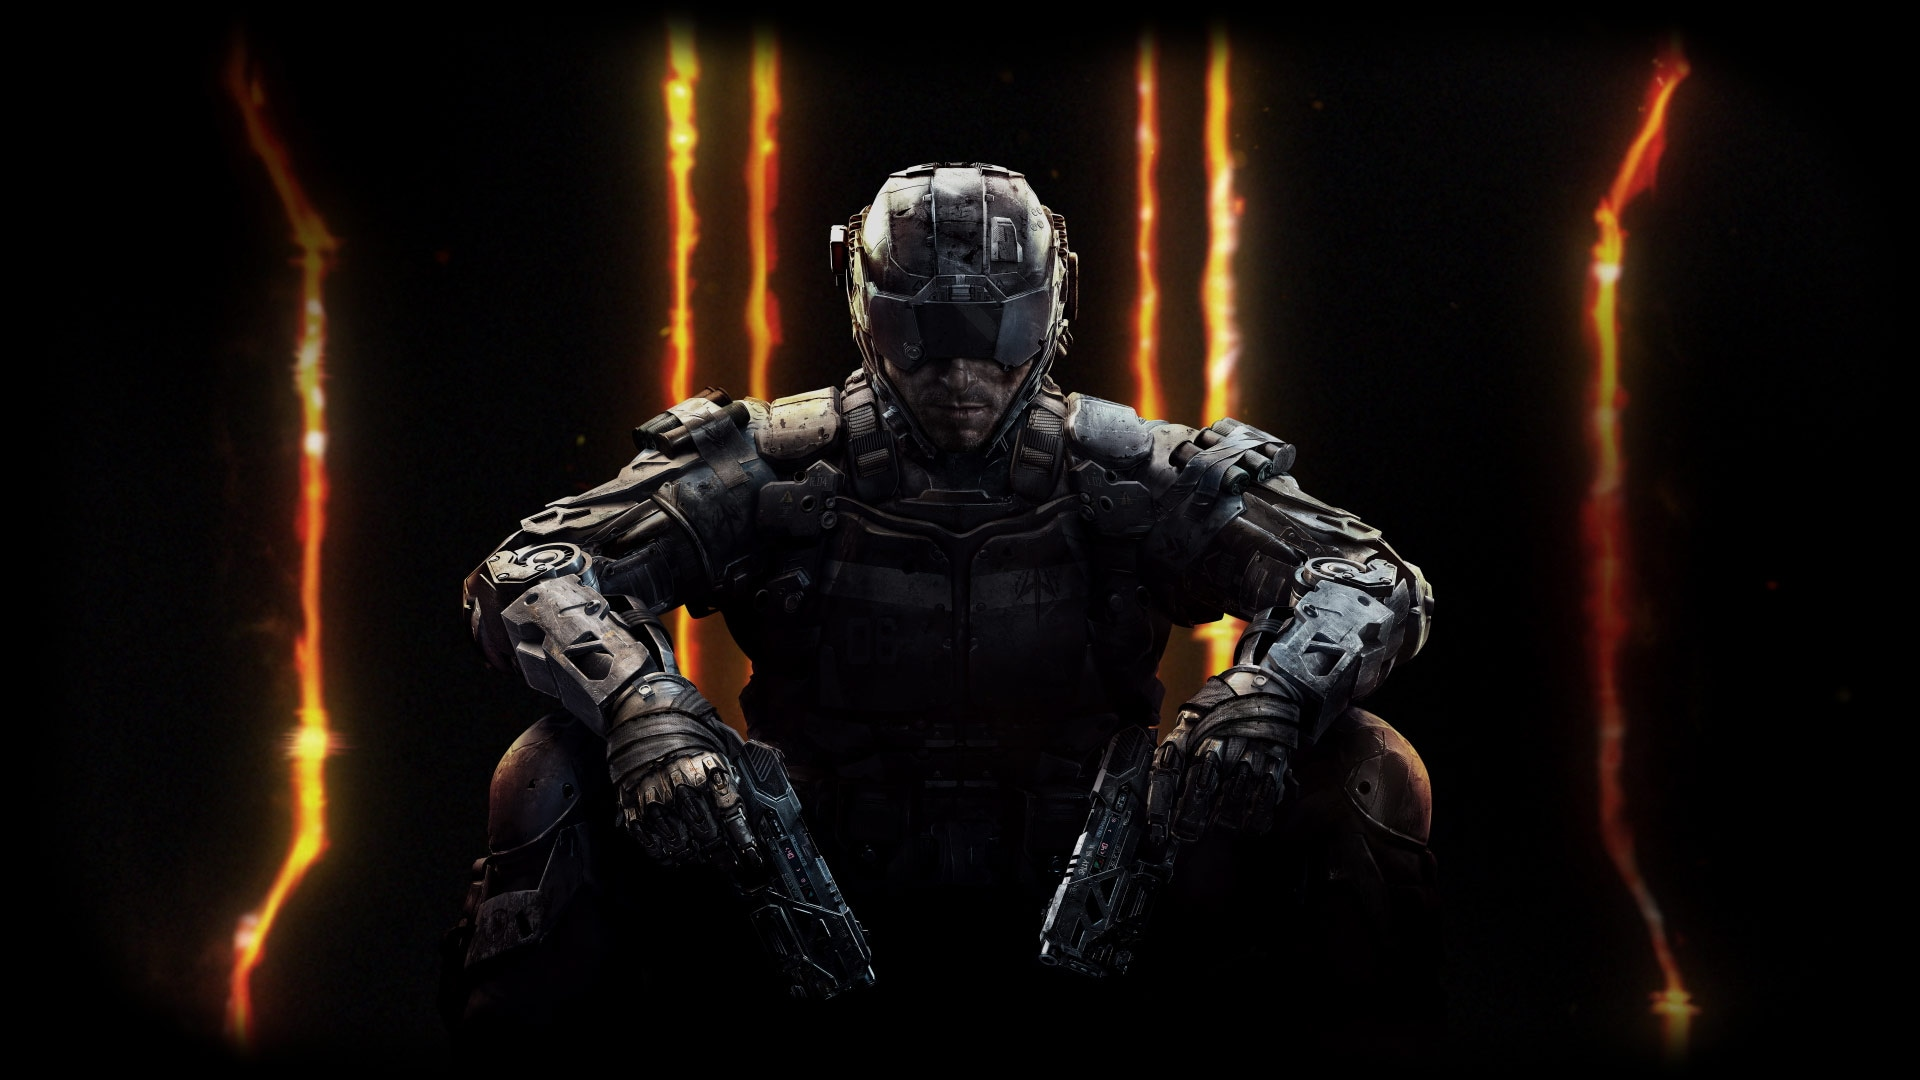 call of duty black ops iii computer wallpapers desktop